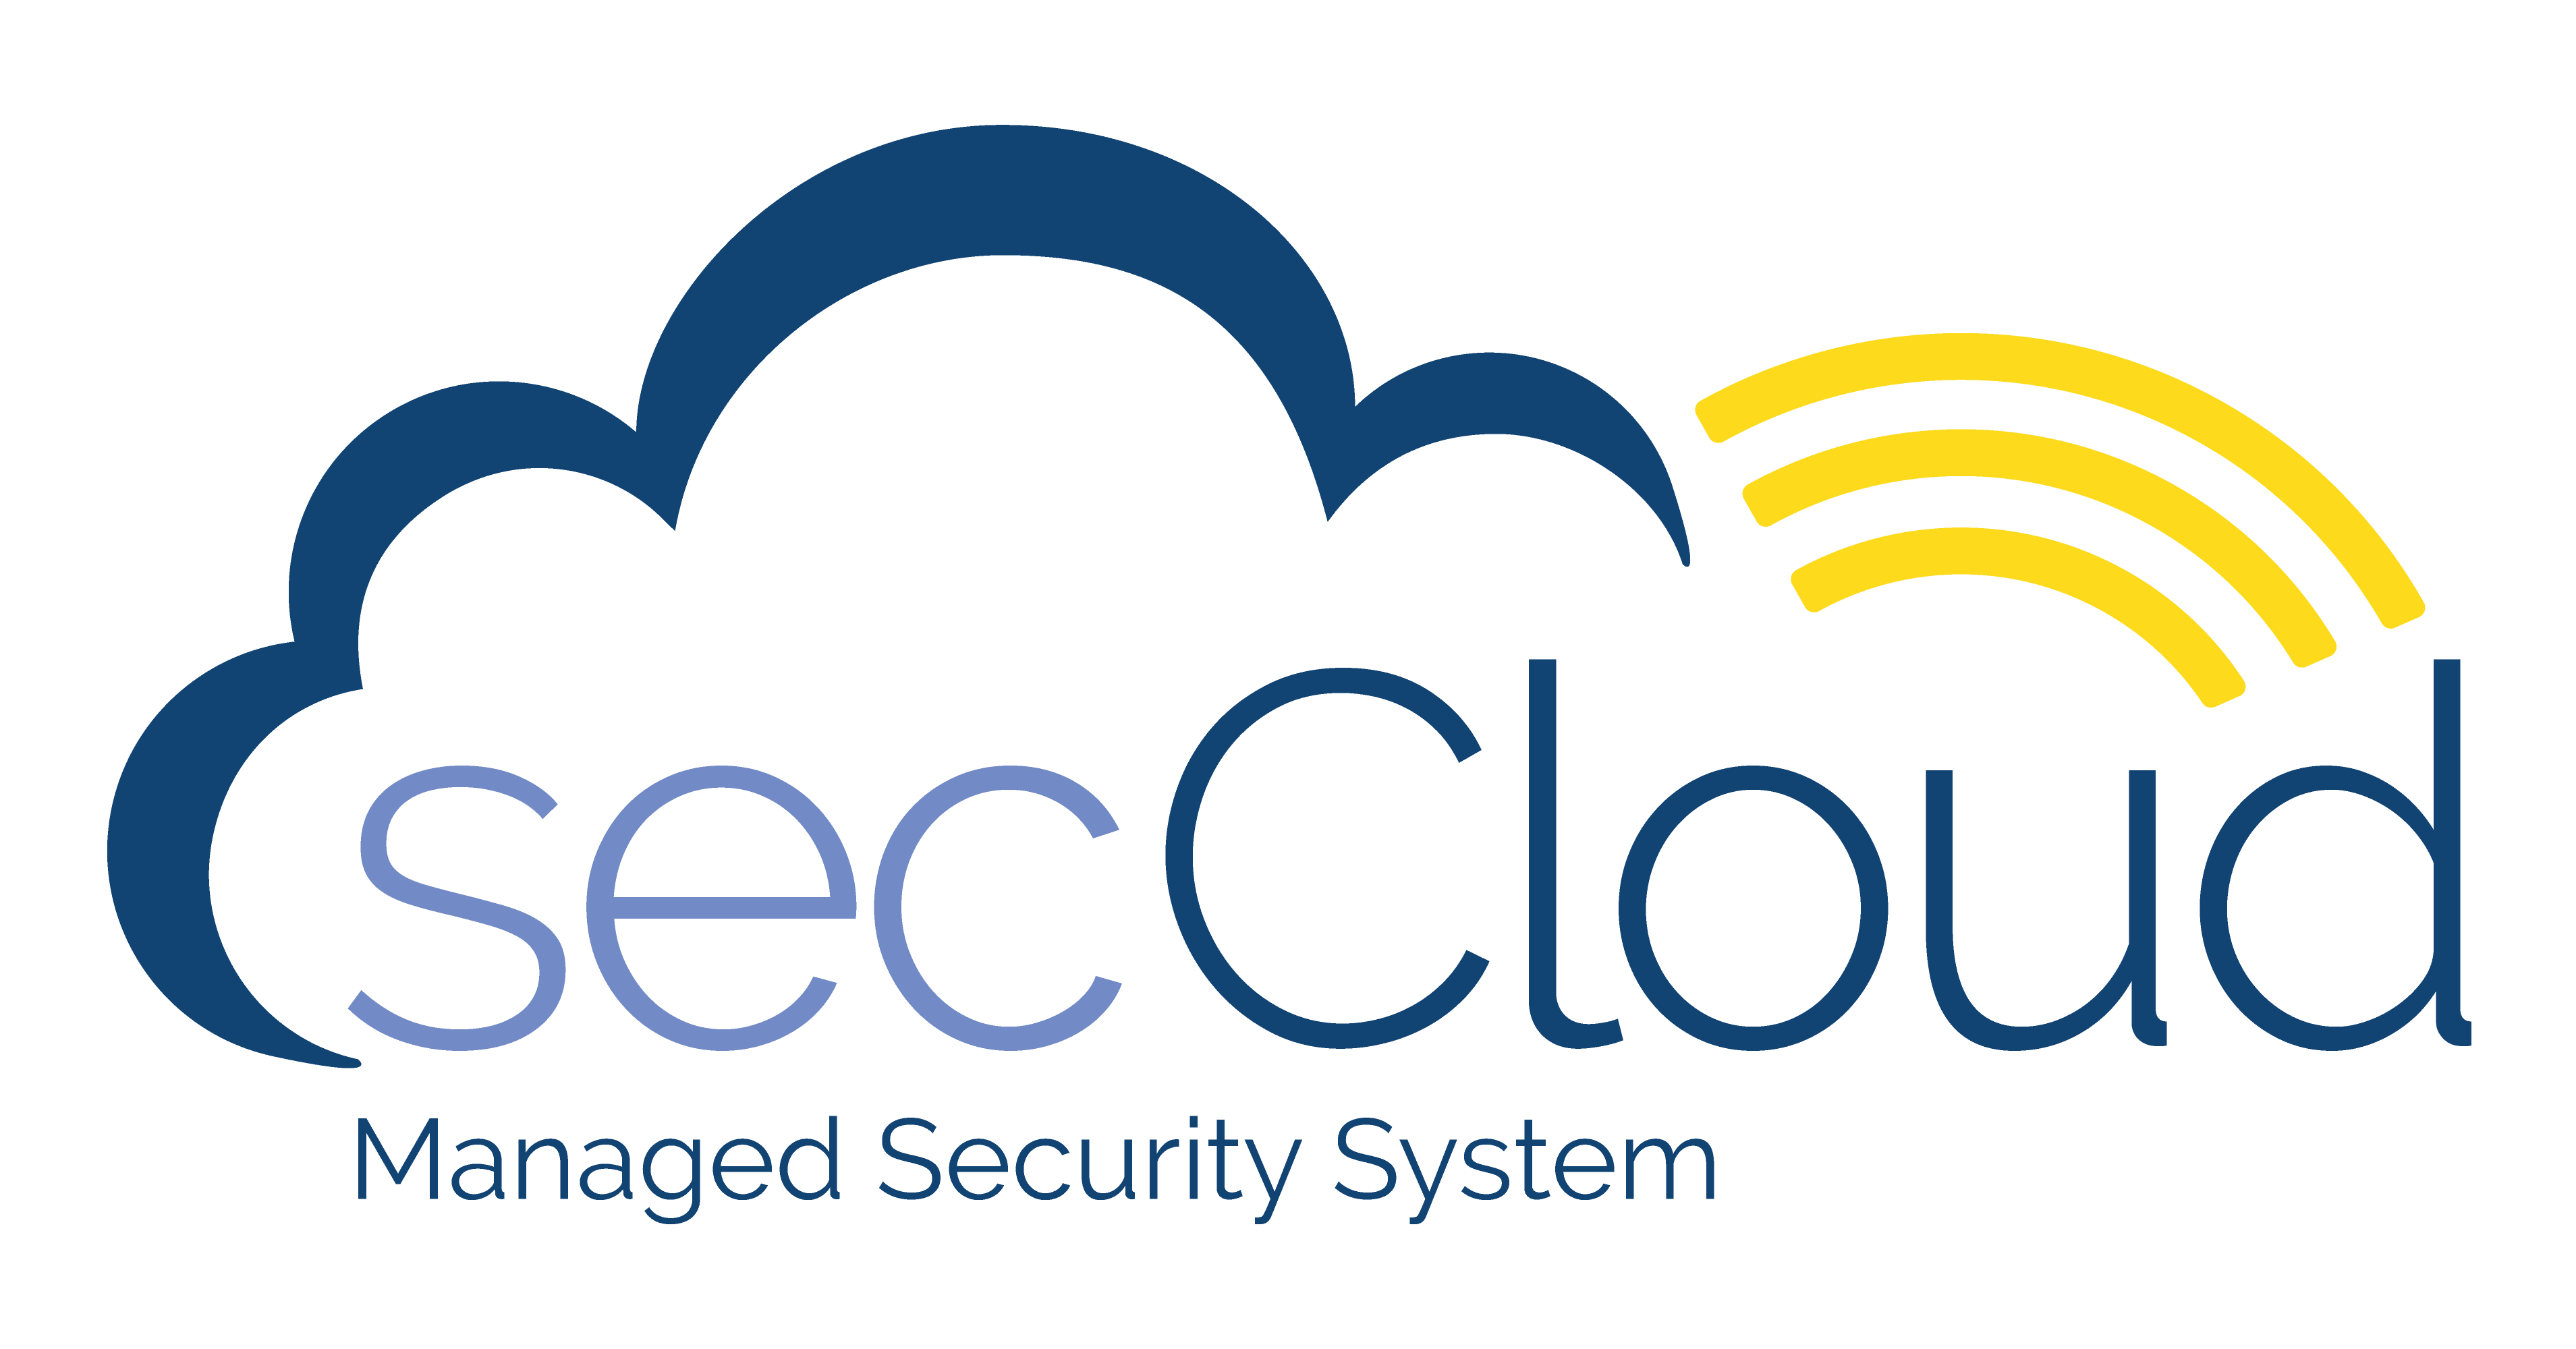 Cloud based security system